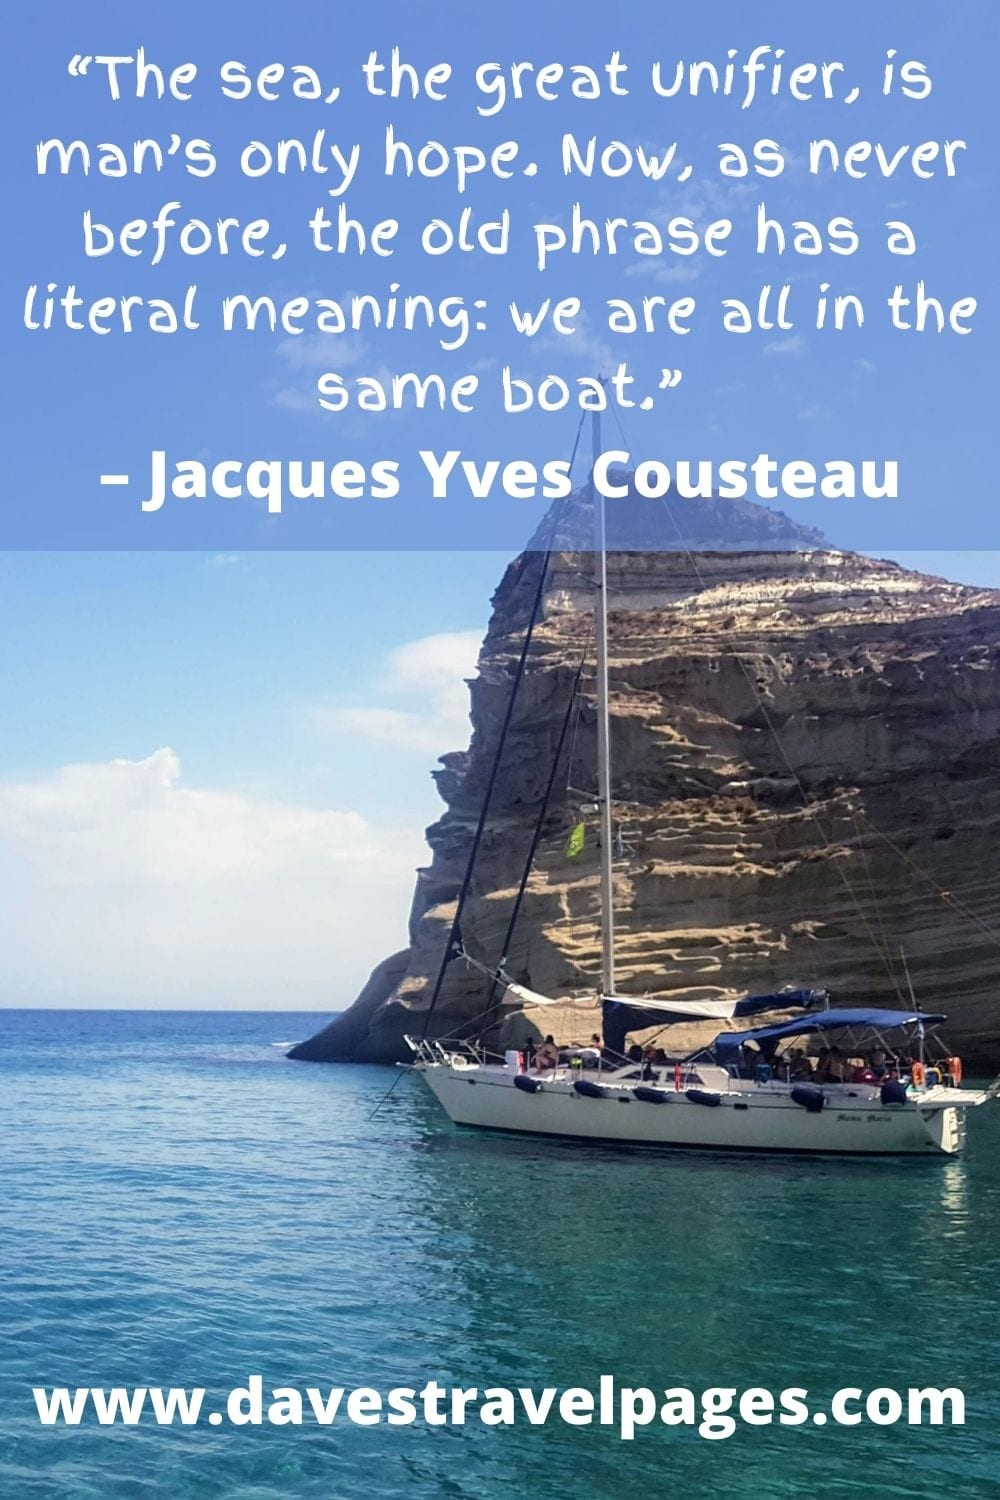 """""""The sea, the great unifier, is man's only hope. Now, as never before, the old phrase has a literal meaning: we are all in the same boat."""" – Jacques Yves Cousteau"""